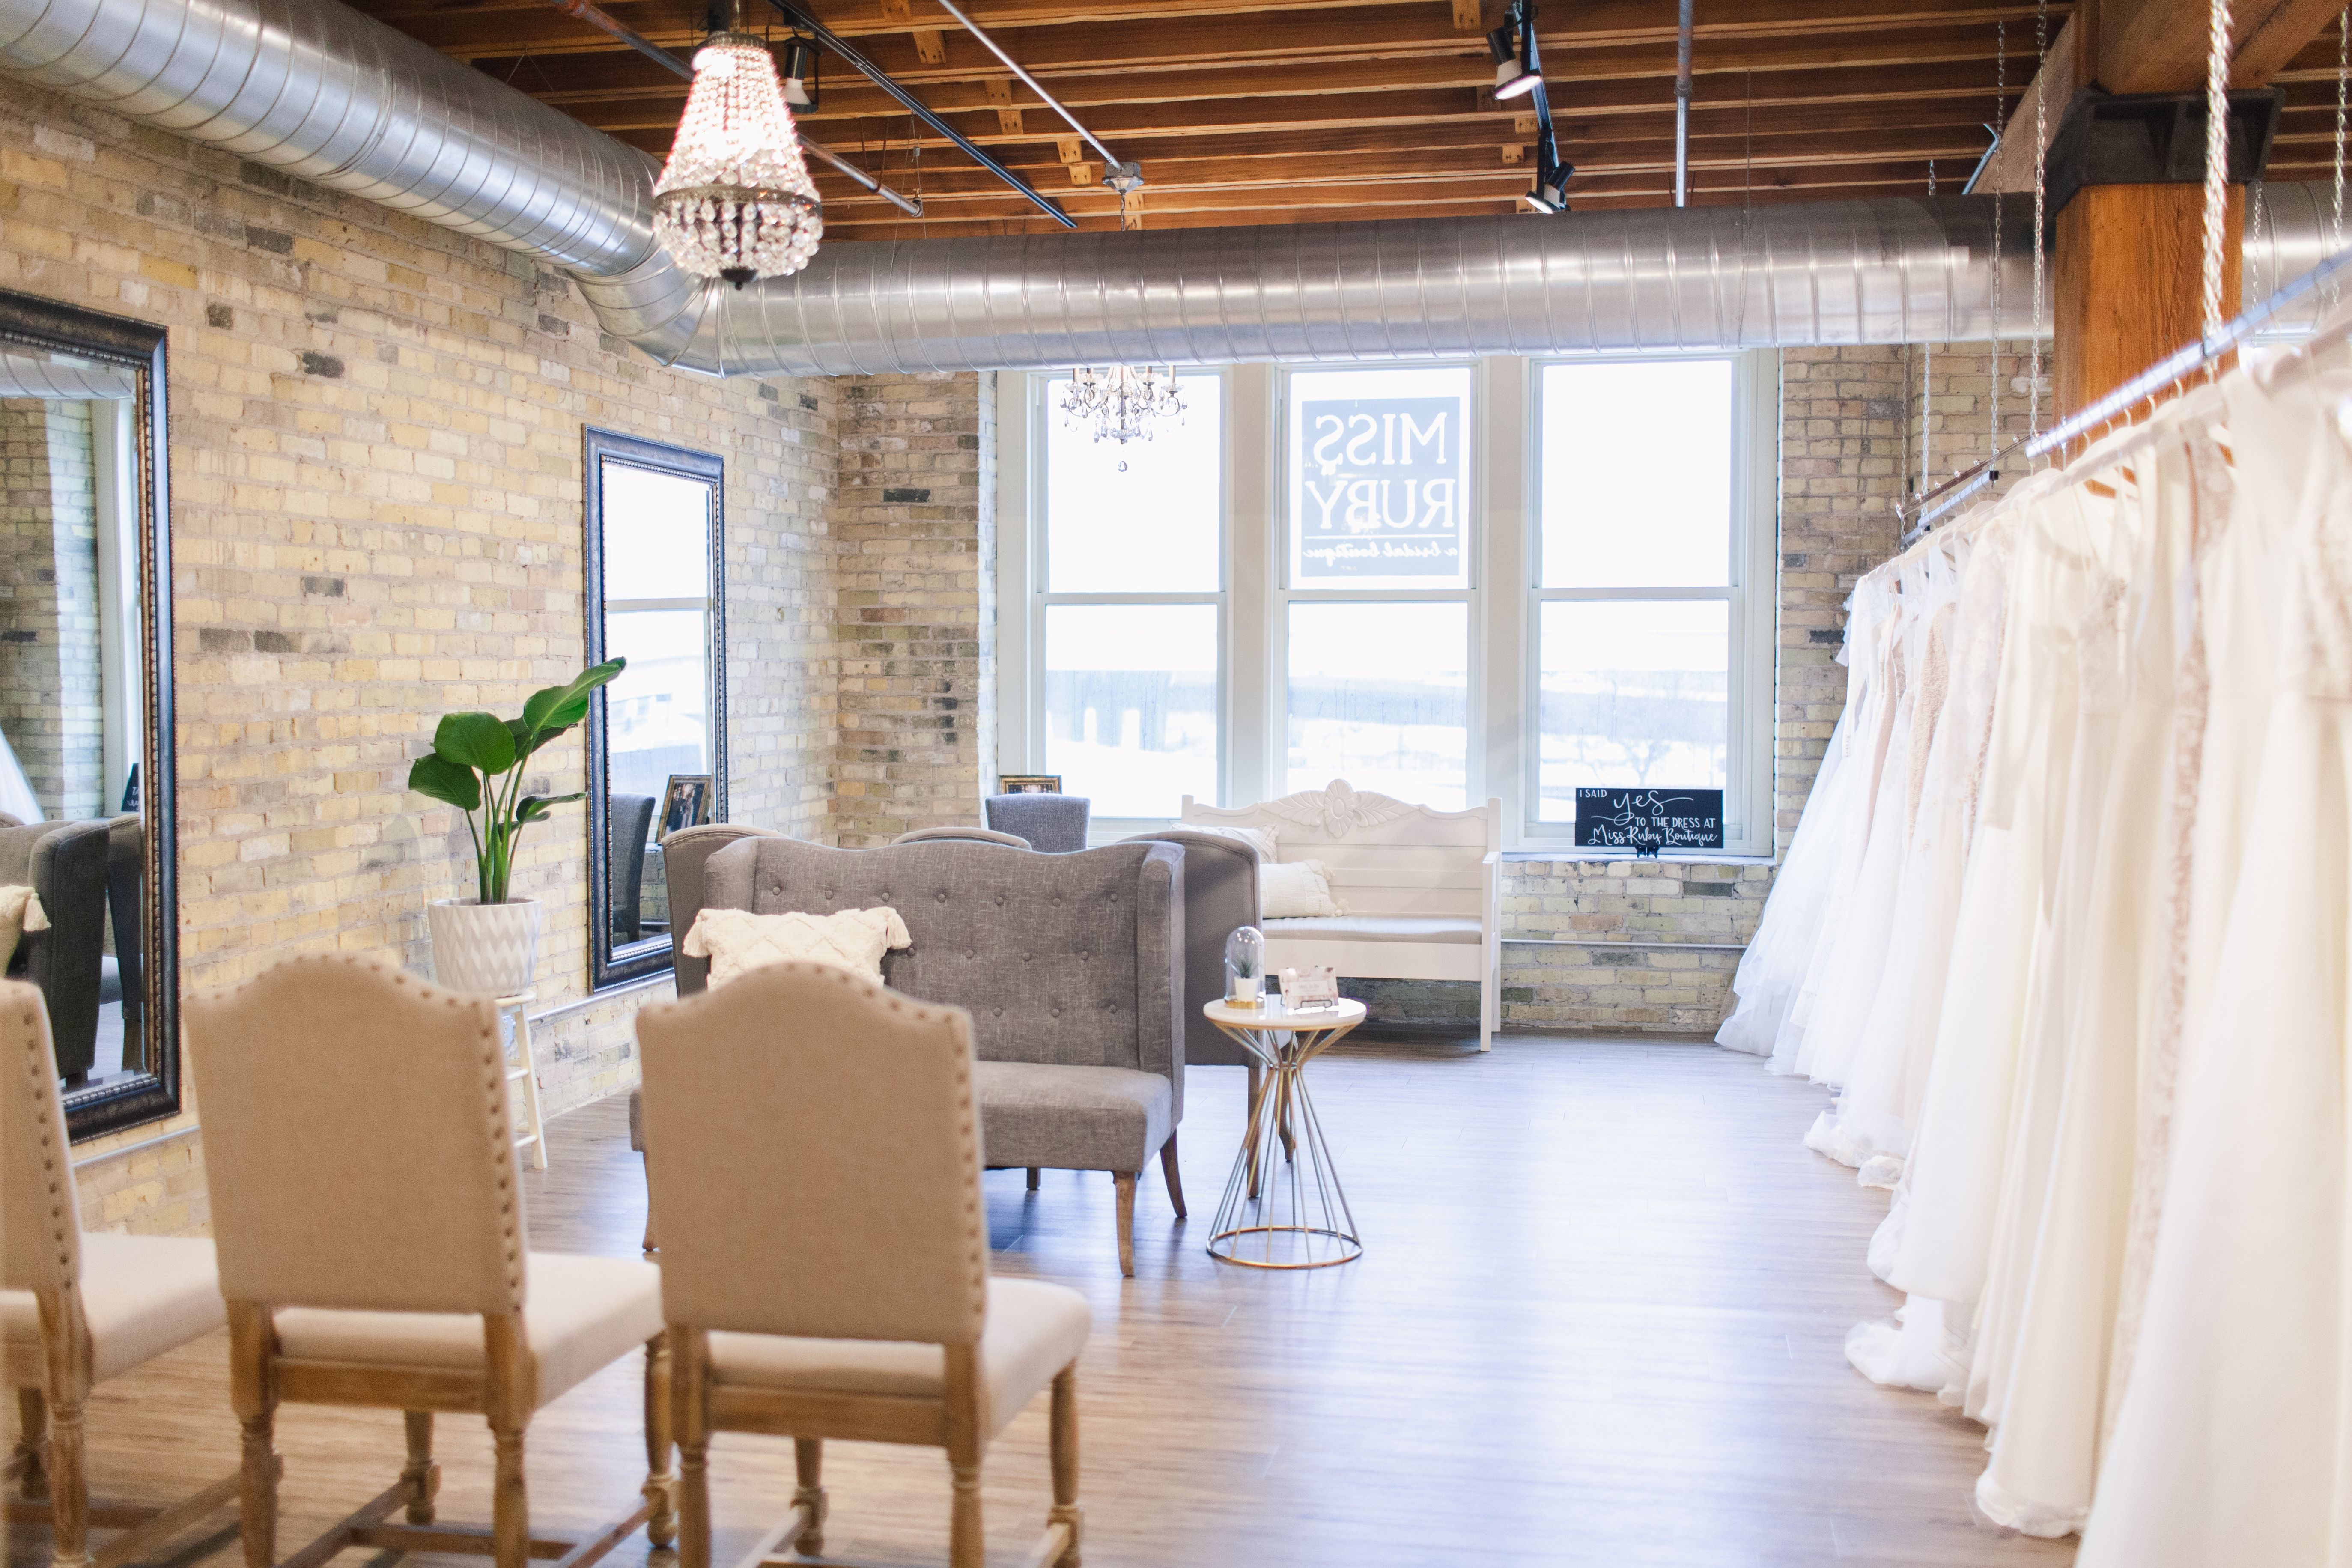 Welcome To Our Cozy Boutique In 2020 Bridal Boutique Boutique Cozy